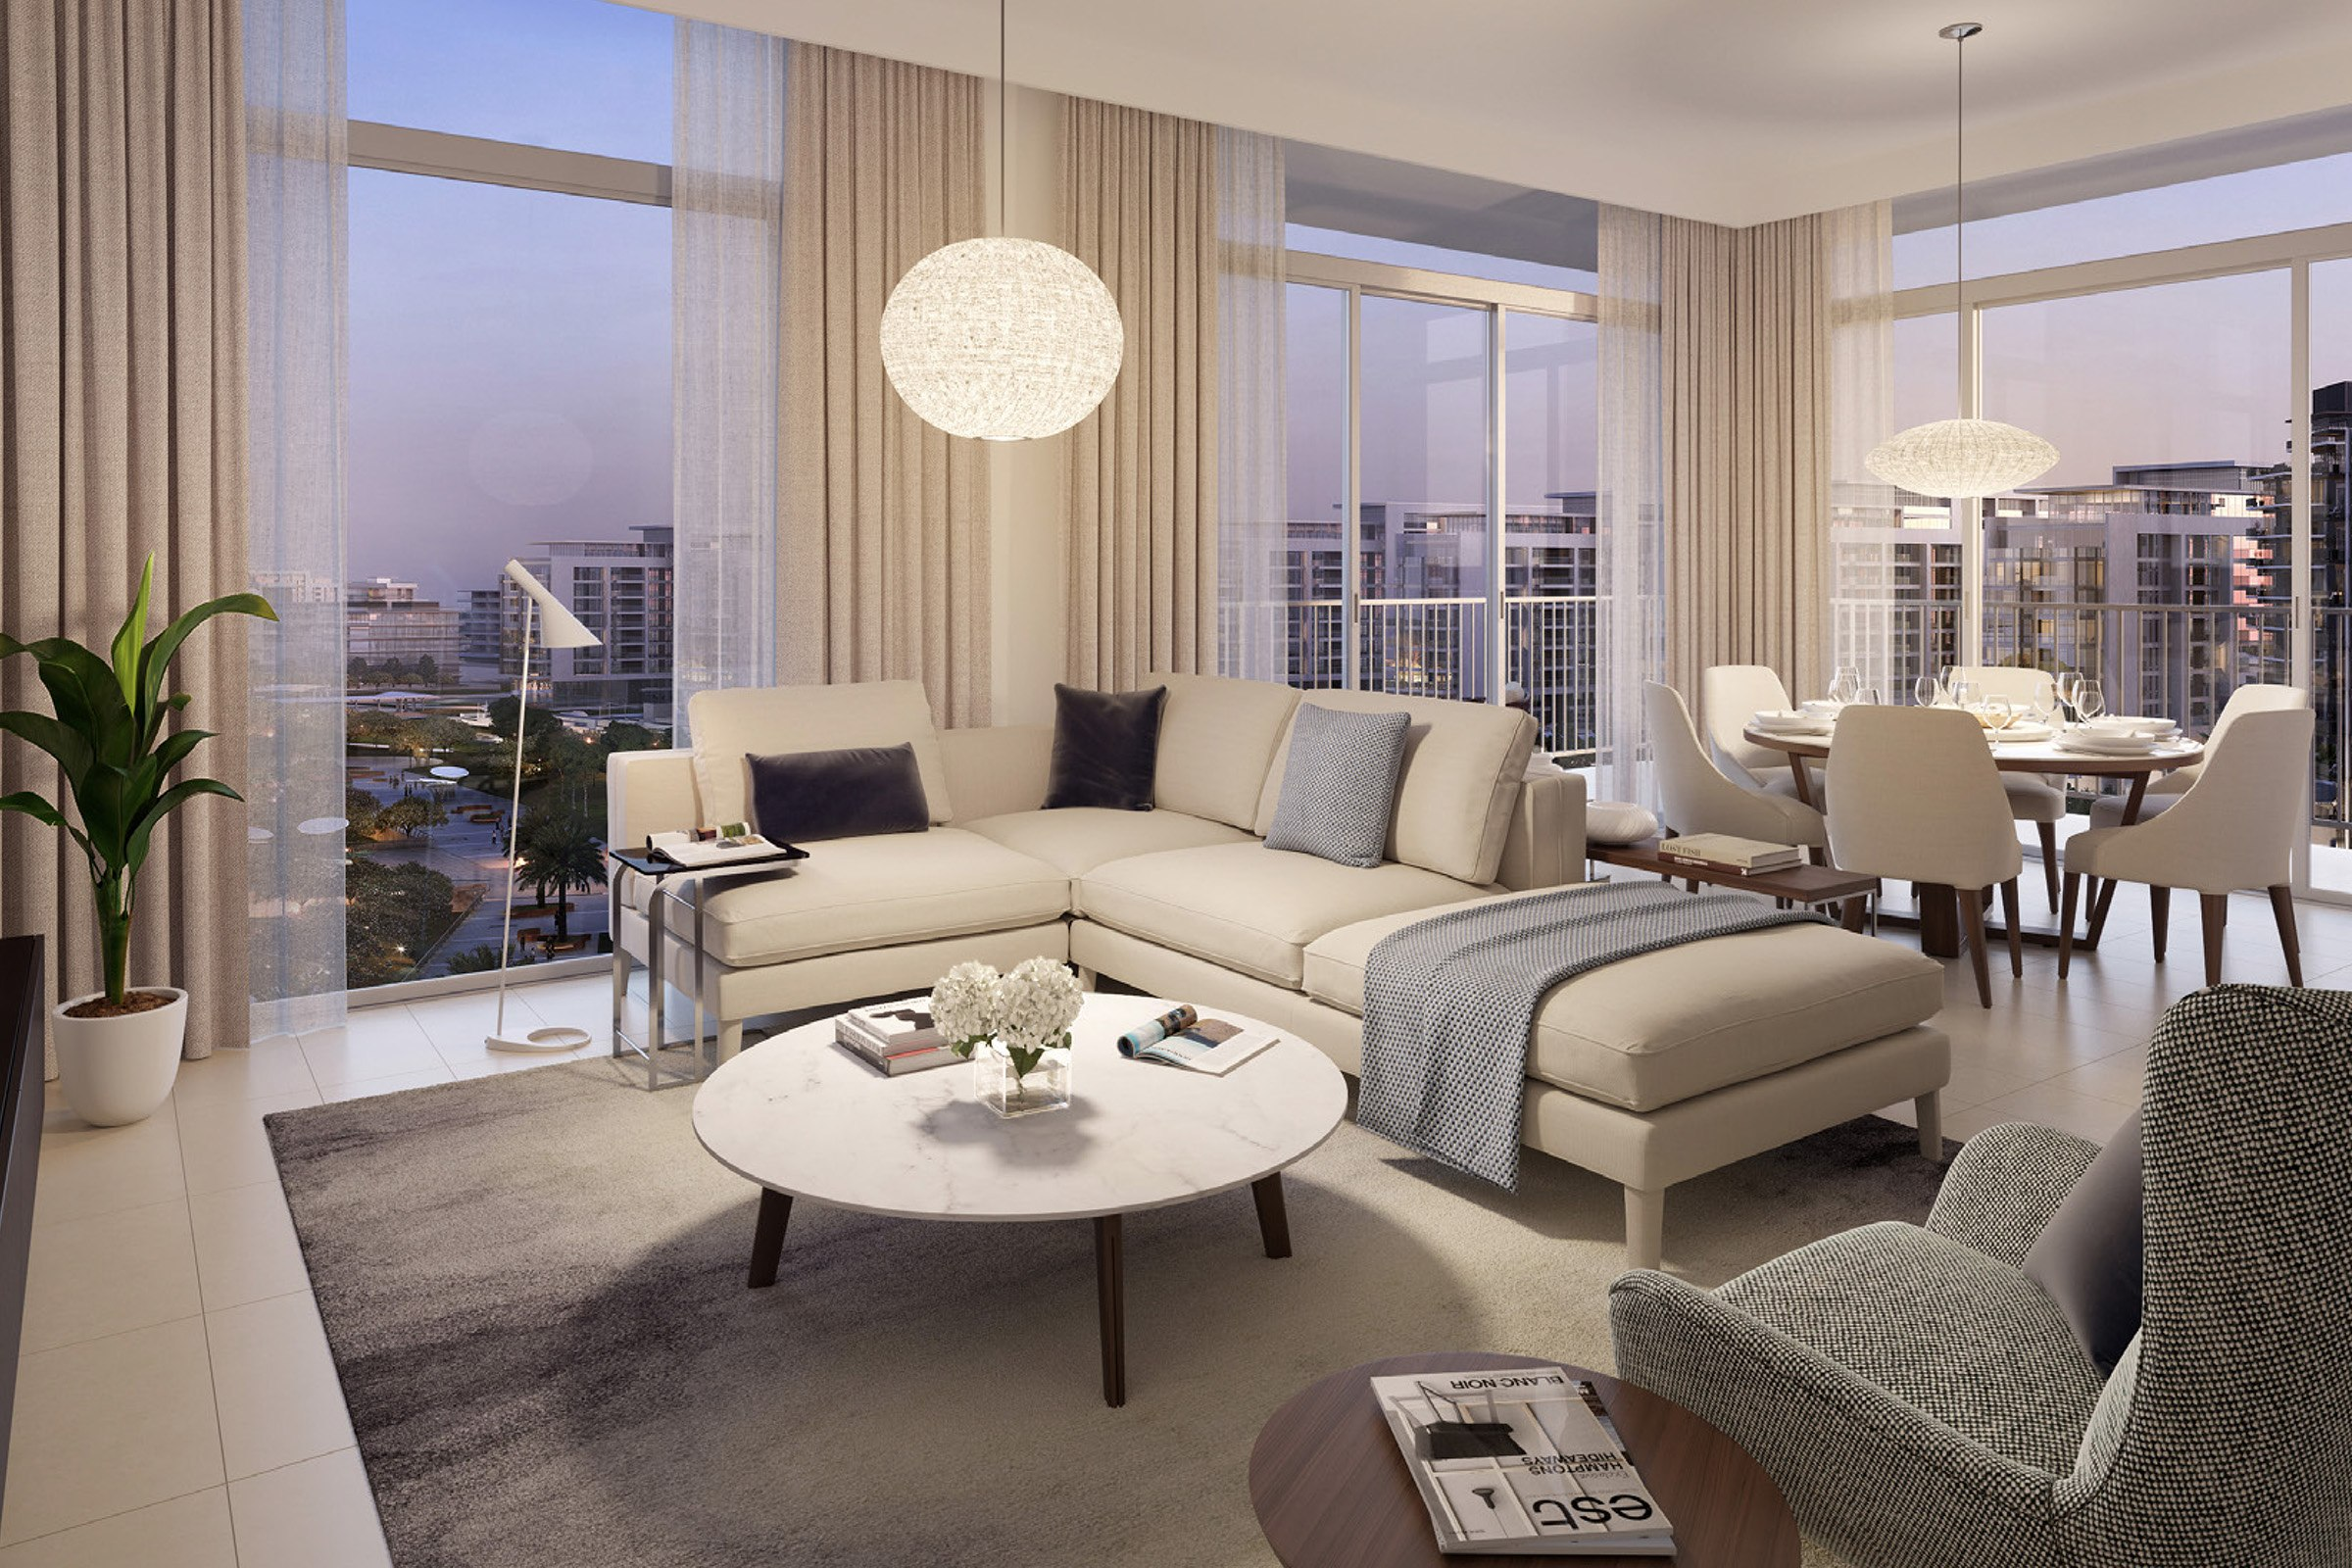 FIRST HOME OFFICE TYPE APARTMENT IN DUBAI